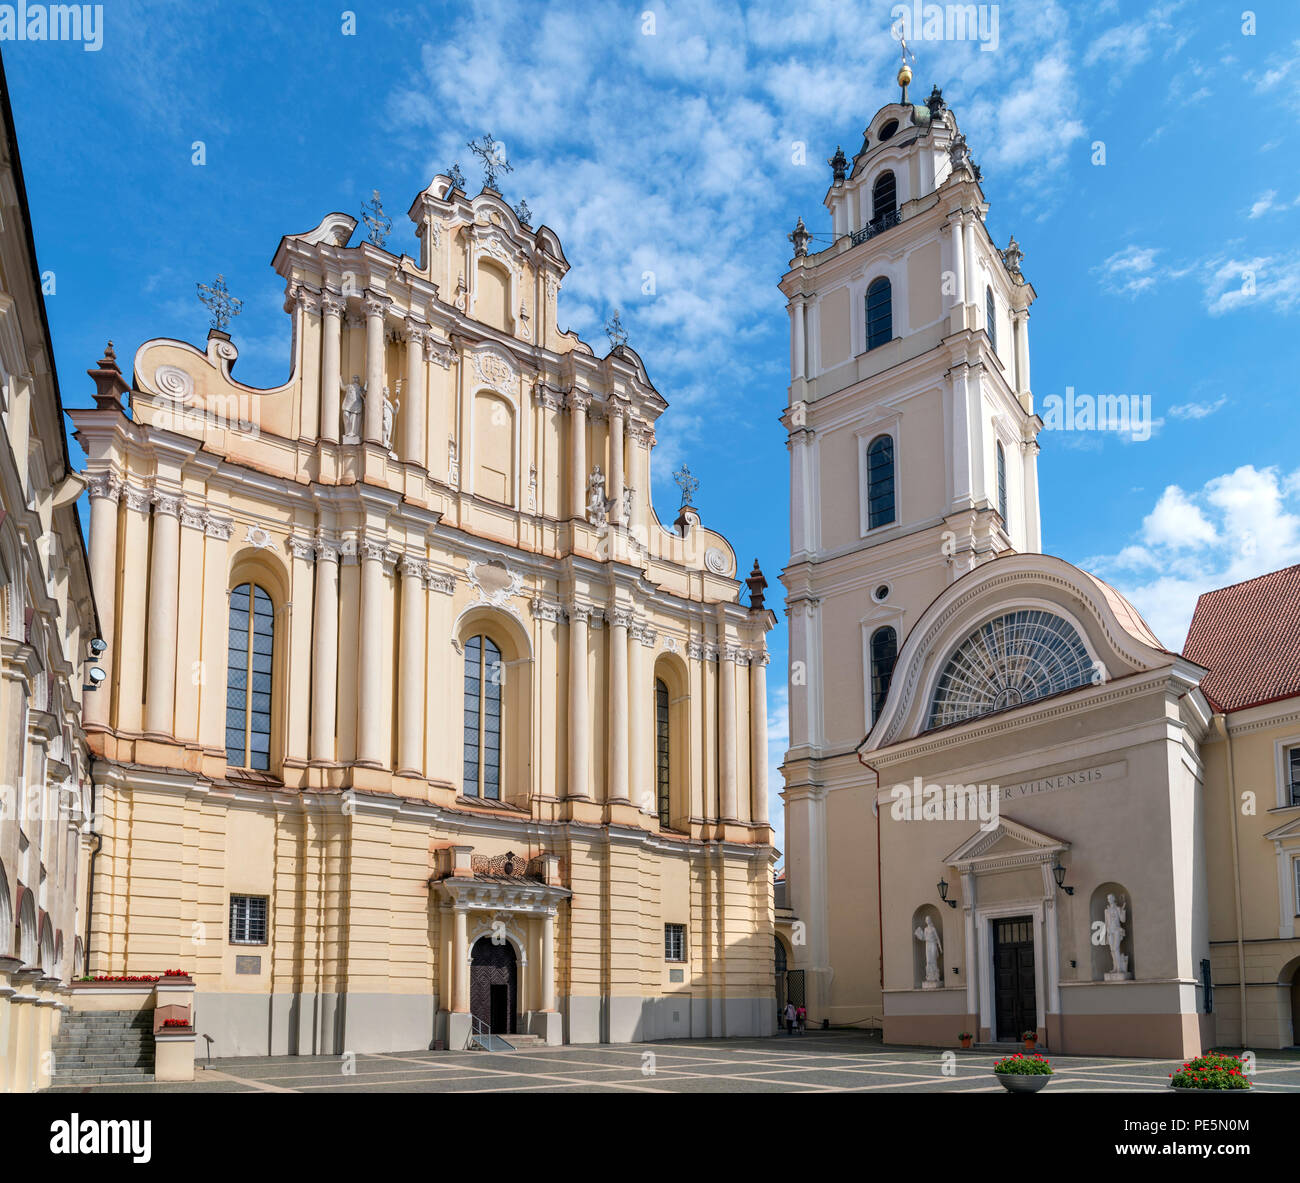 St Johns Church and its free standing bell tower, Grand Courtyard, Vilnius University, Vilnius, Lithuania - Stock Image